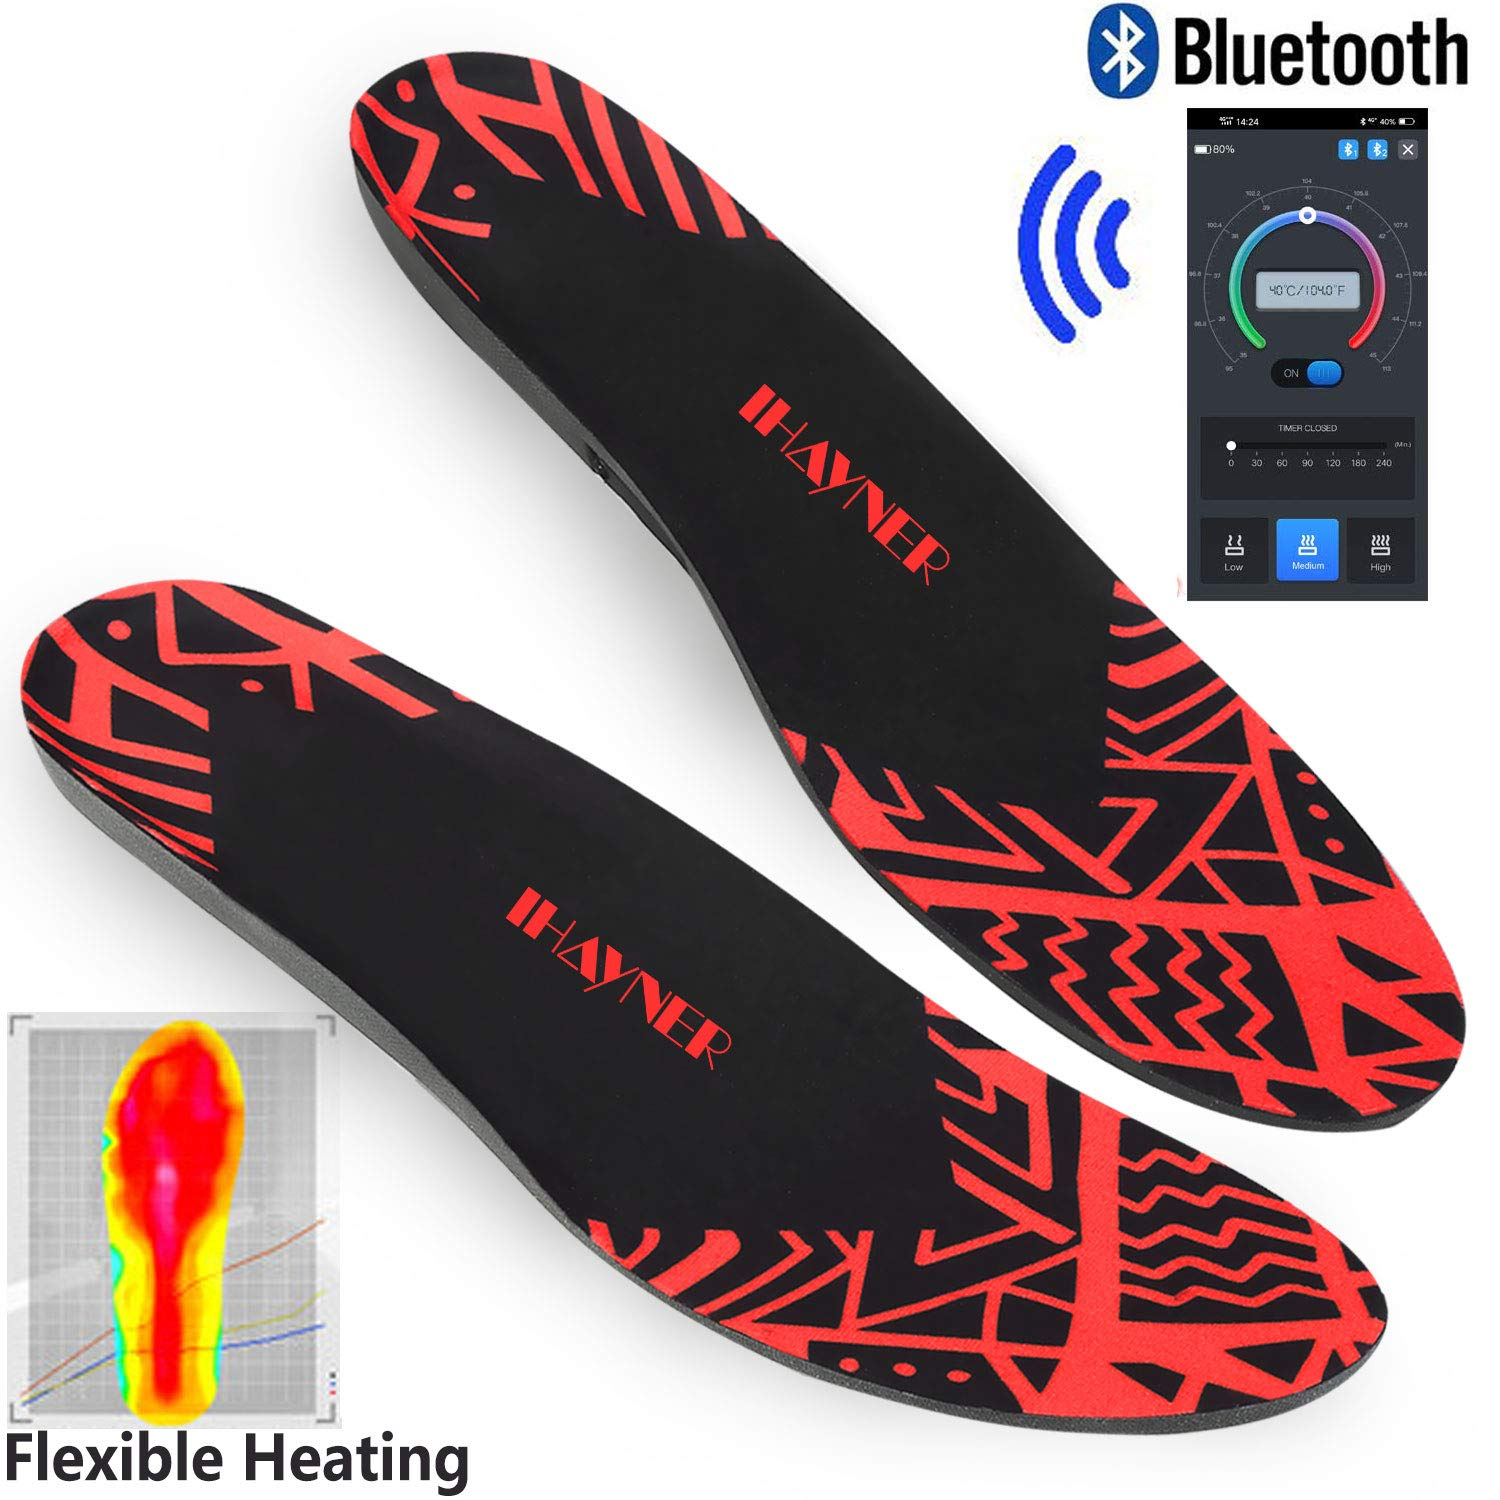 INWAVE US Heated Insoles Rechargeable Bluetooth Controlling Electric Foot Warmers Heating Shoe Inserts for Women and Men